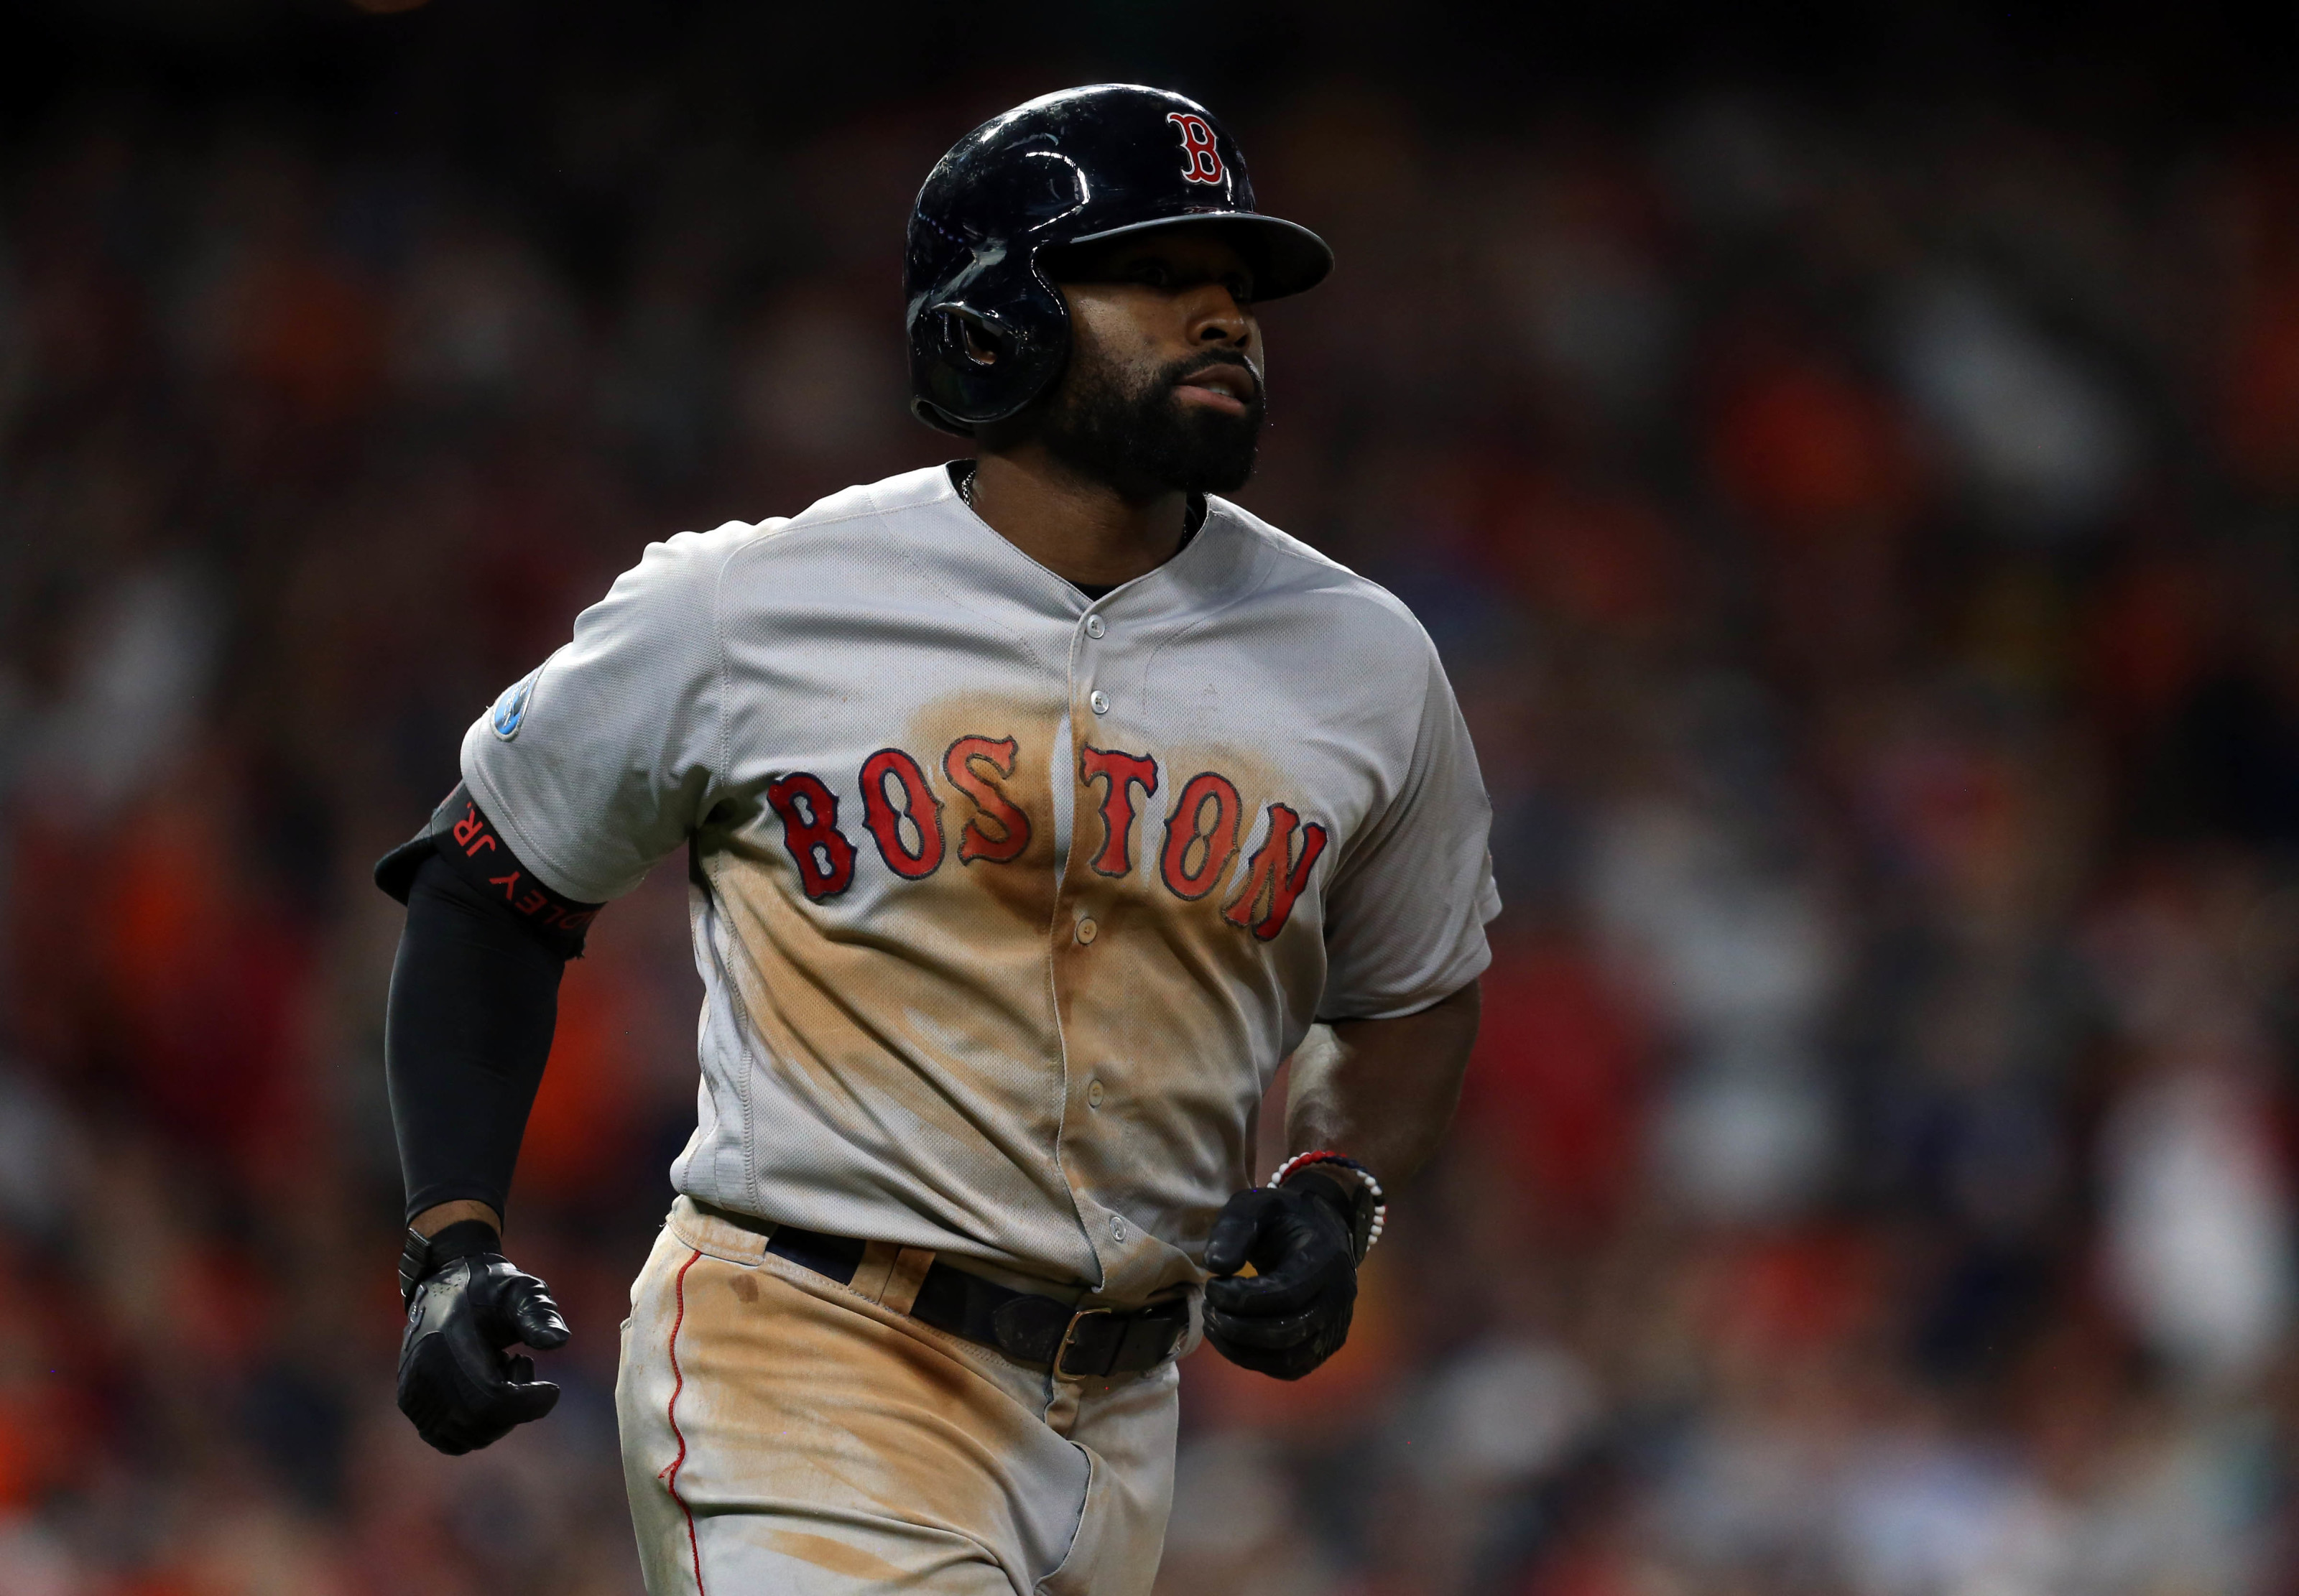 Astros: Is Jackie Bradley Jr. the next possible signing?